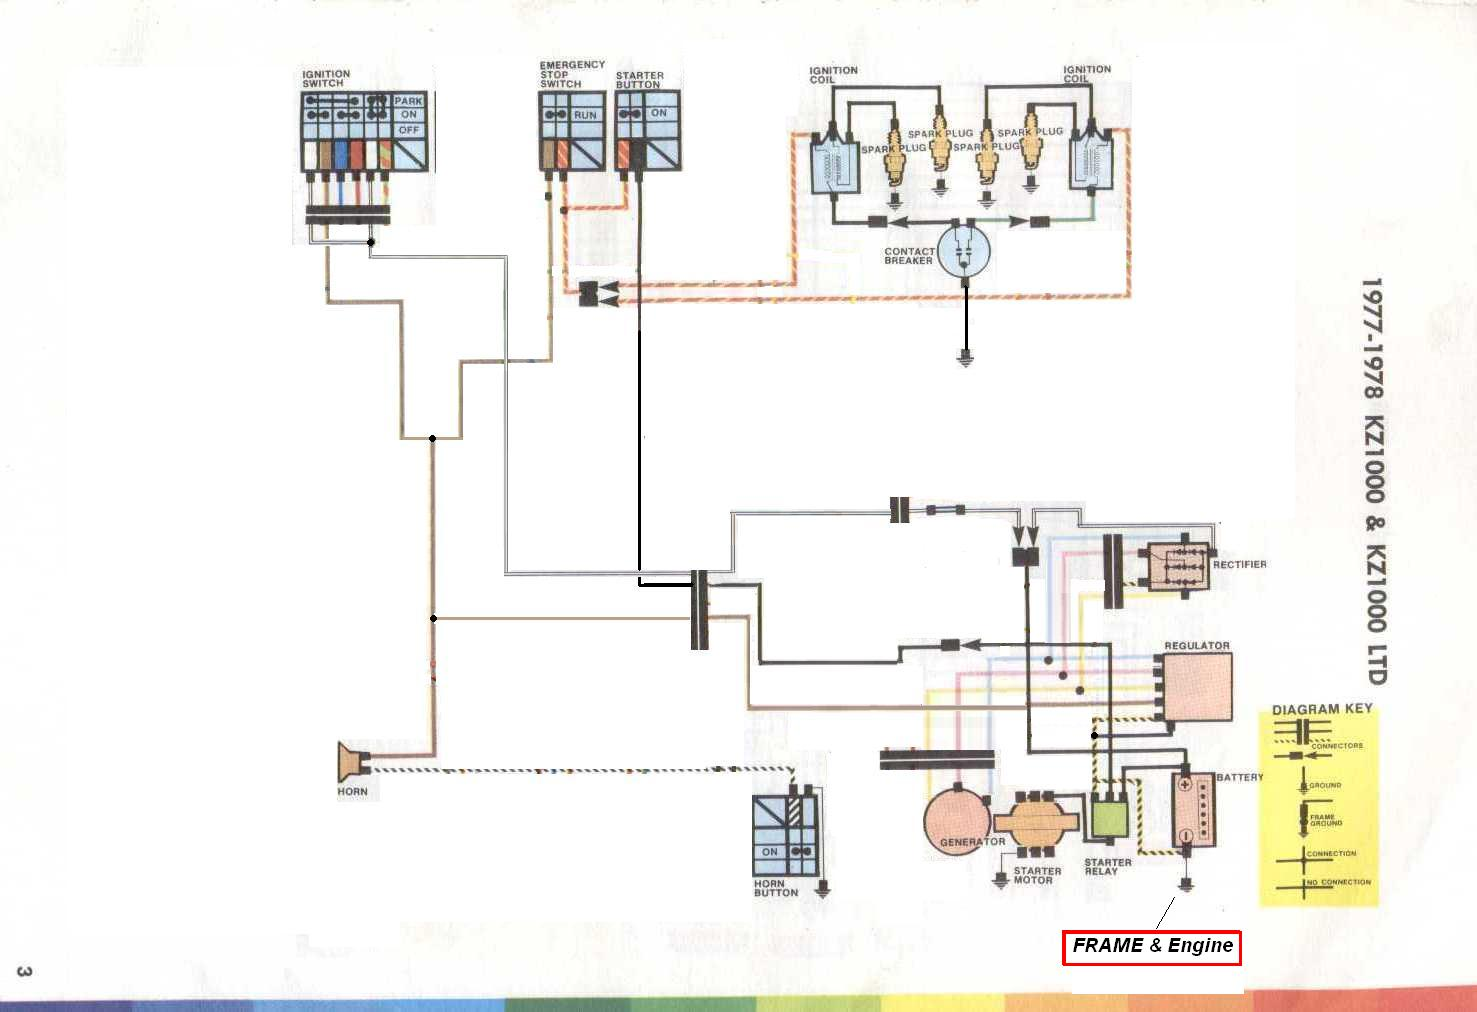 WRG-0704] Kz1000 Engine Diagram